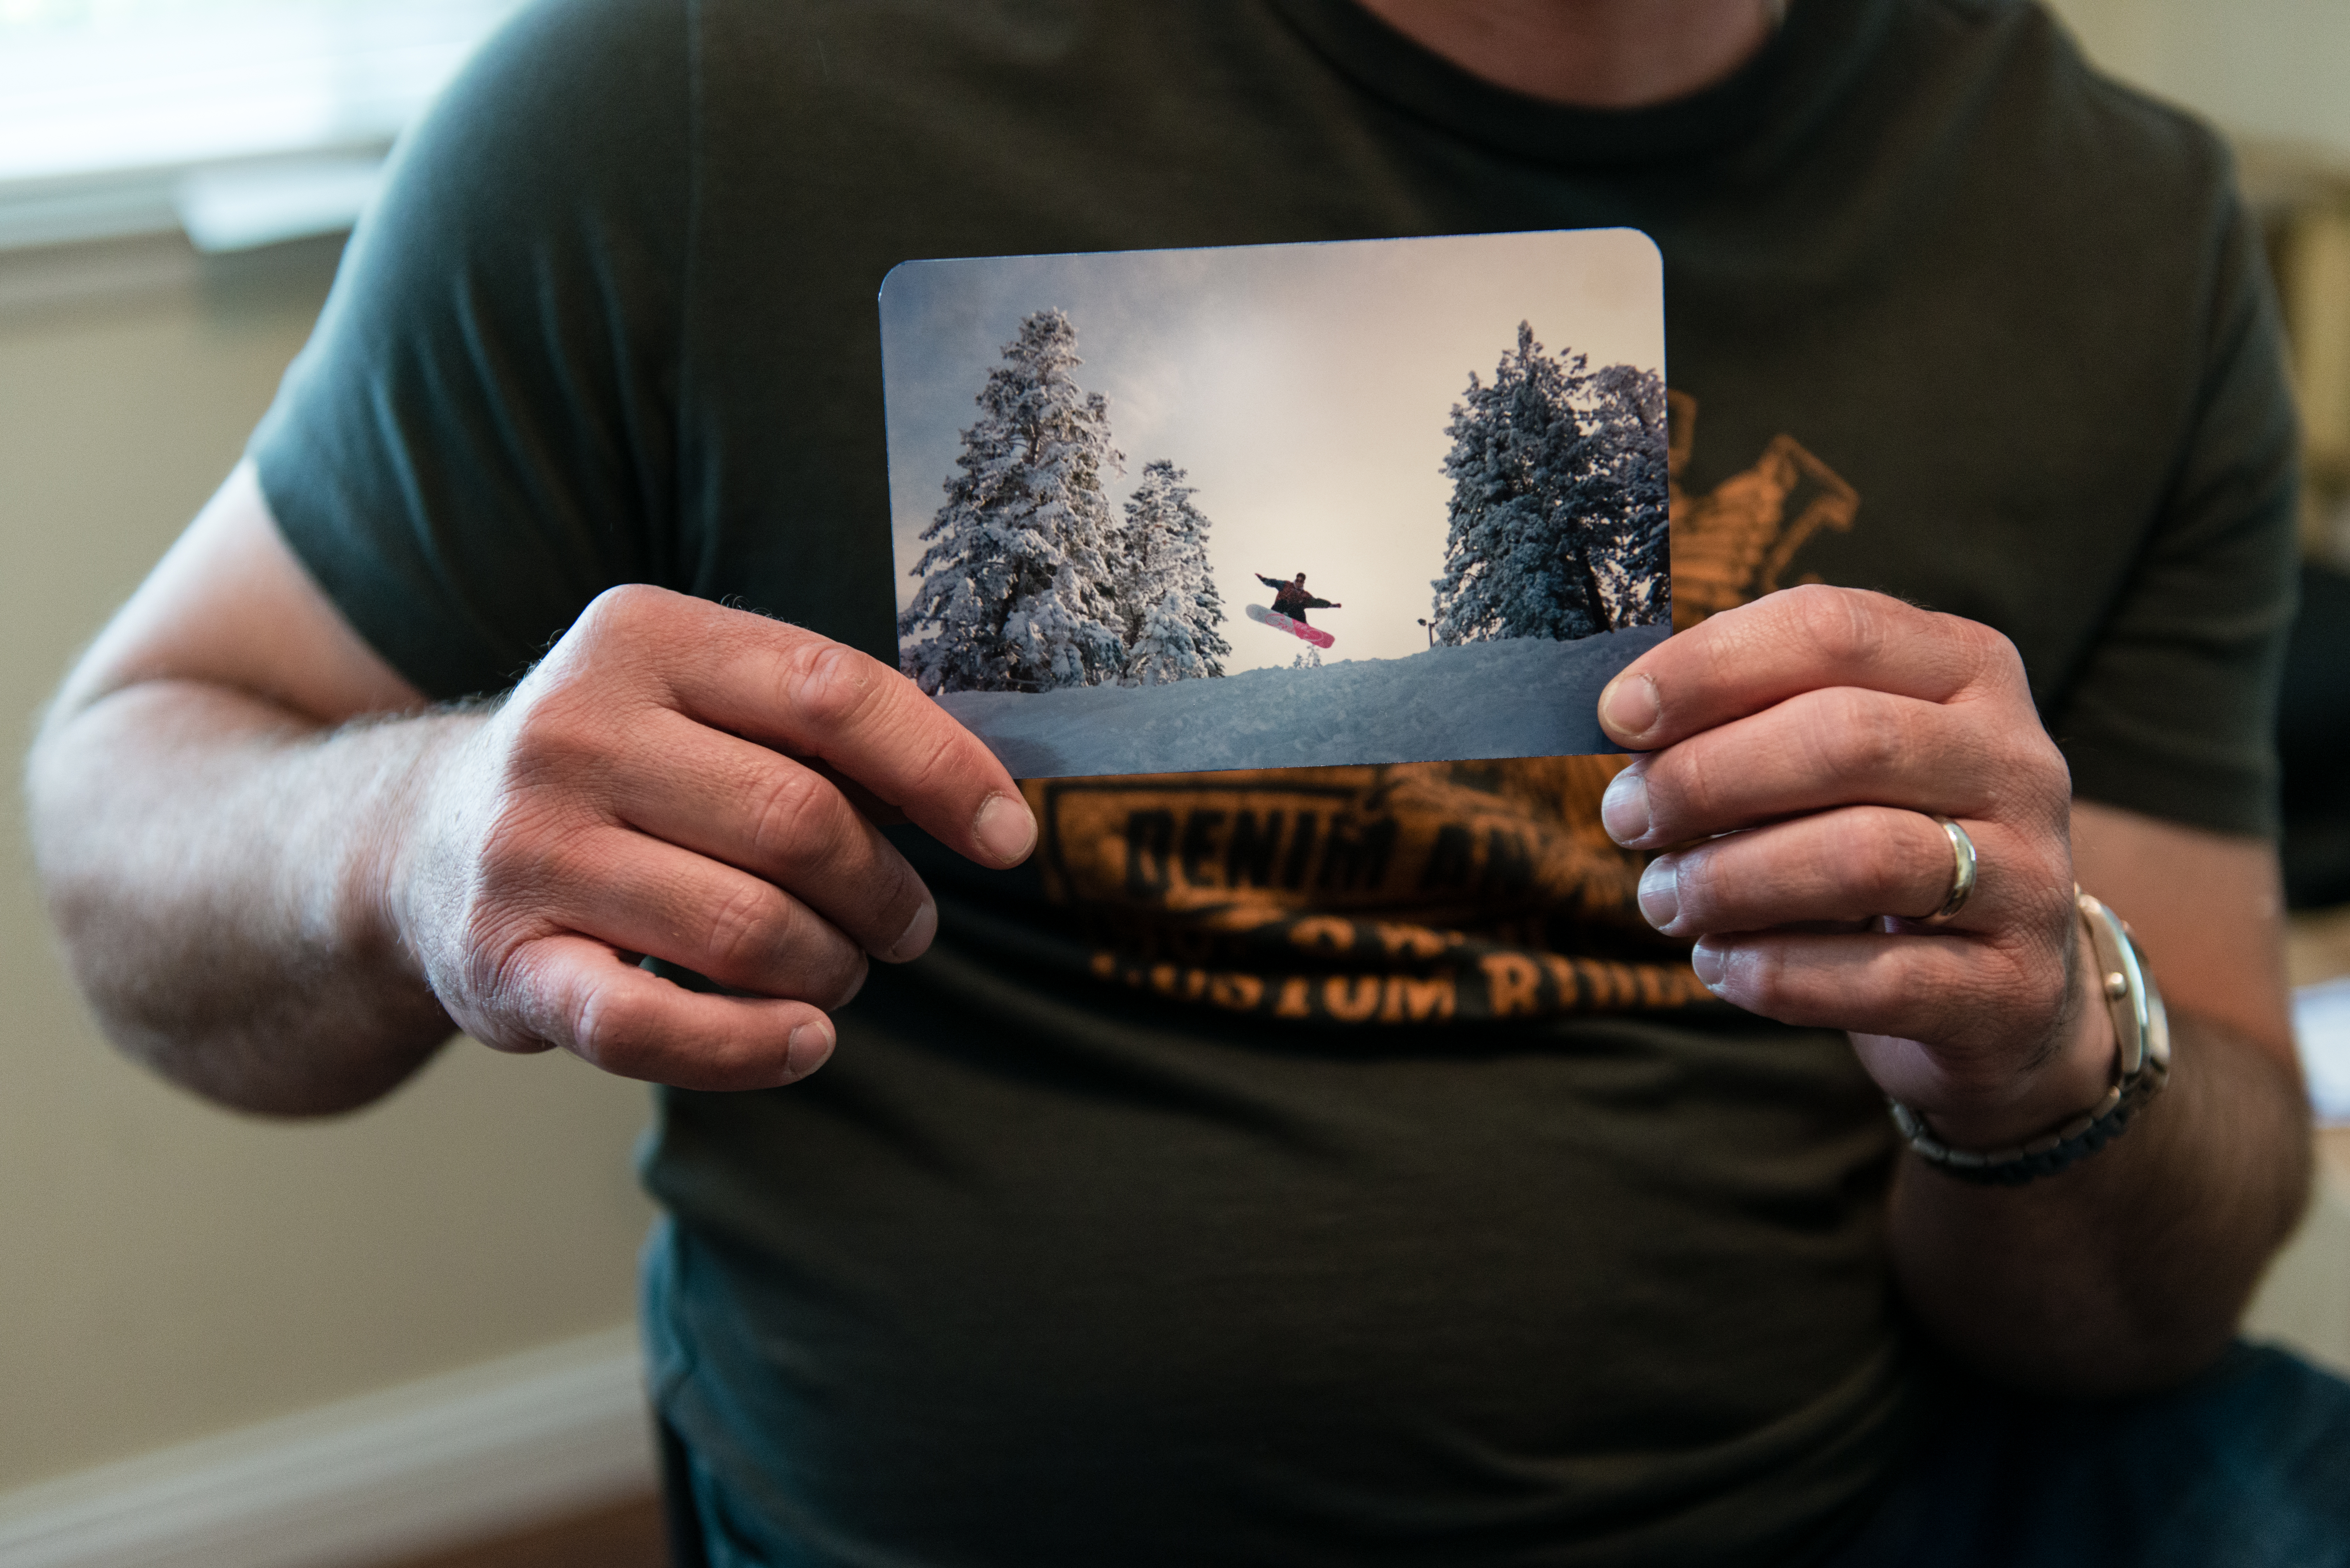 Anthony R. Orefice holds a photo of himself snowboarding at Mt. High in California before his accident.  Orefice says he is still physically active despite being paralyzed from the chest down (Photo by Heidi de Marco/KHN).